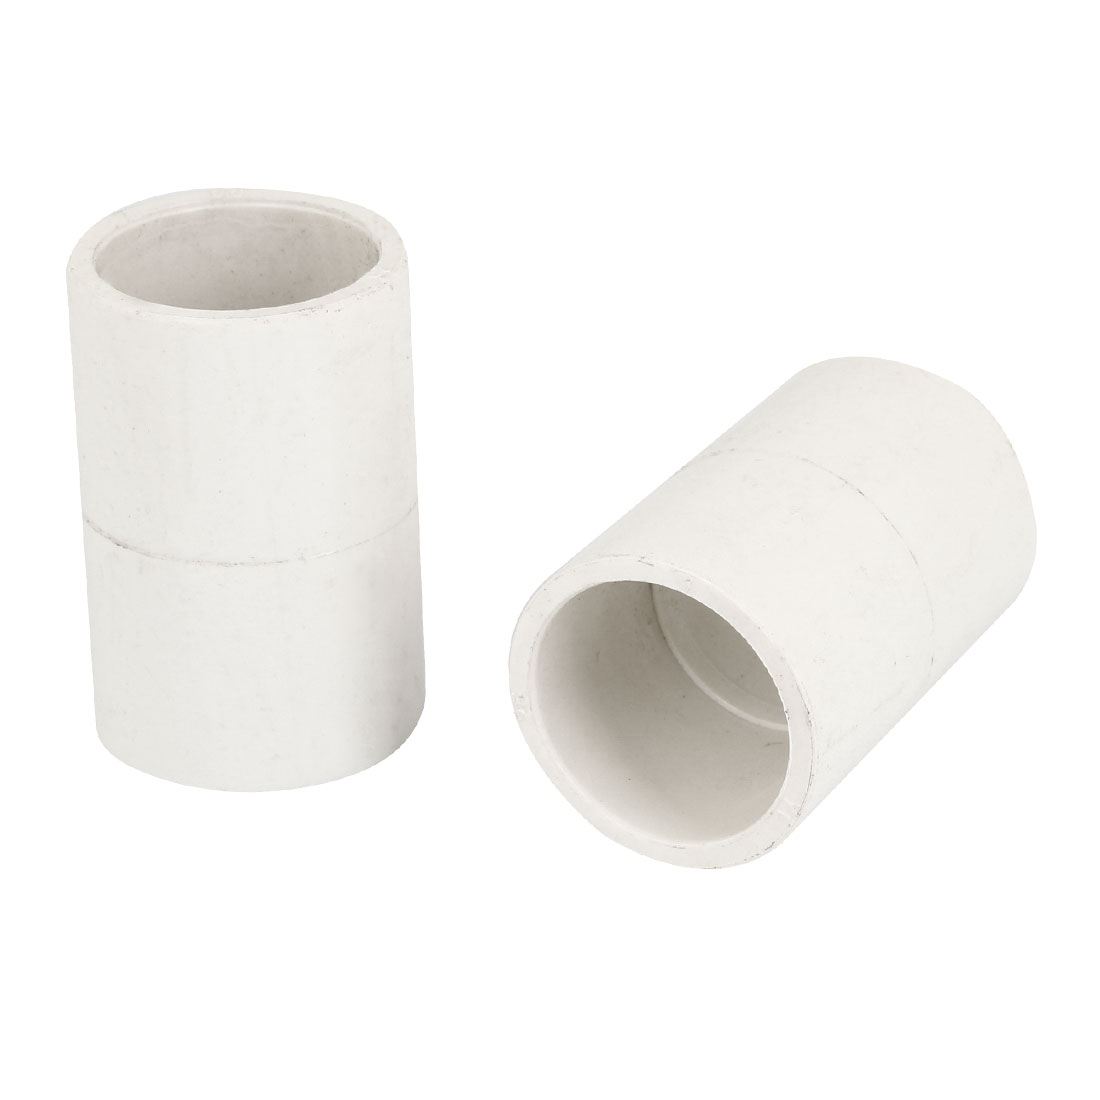 "2pcs White 25mm 0.98"" Inner Diameter PVC Drainage Straight Pipe Connectors"